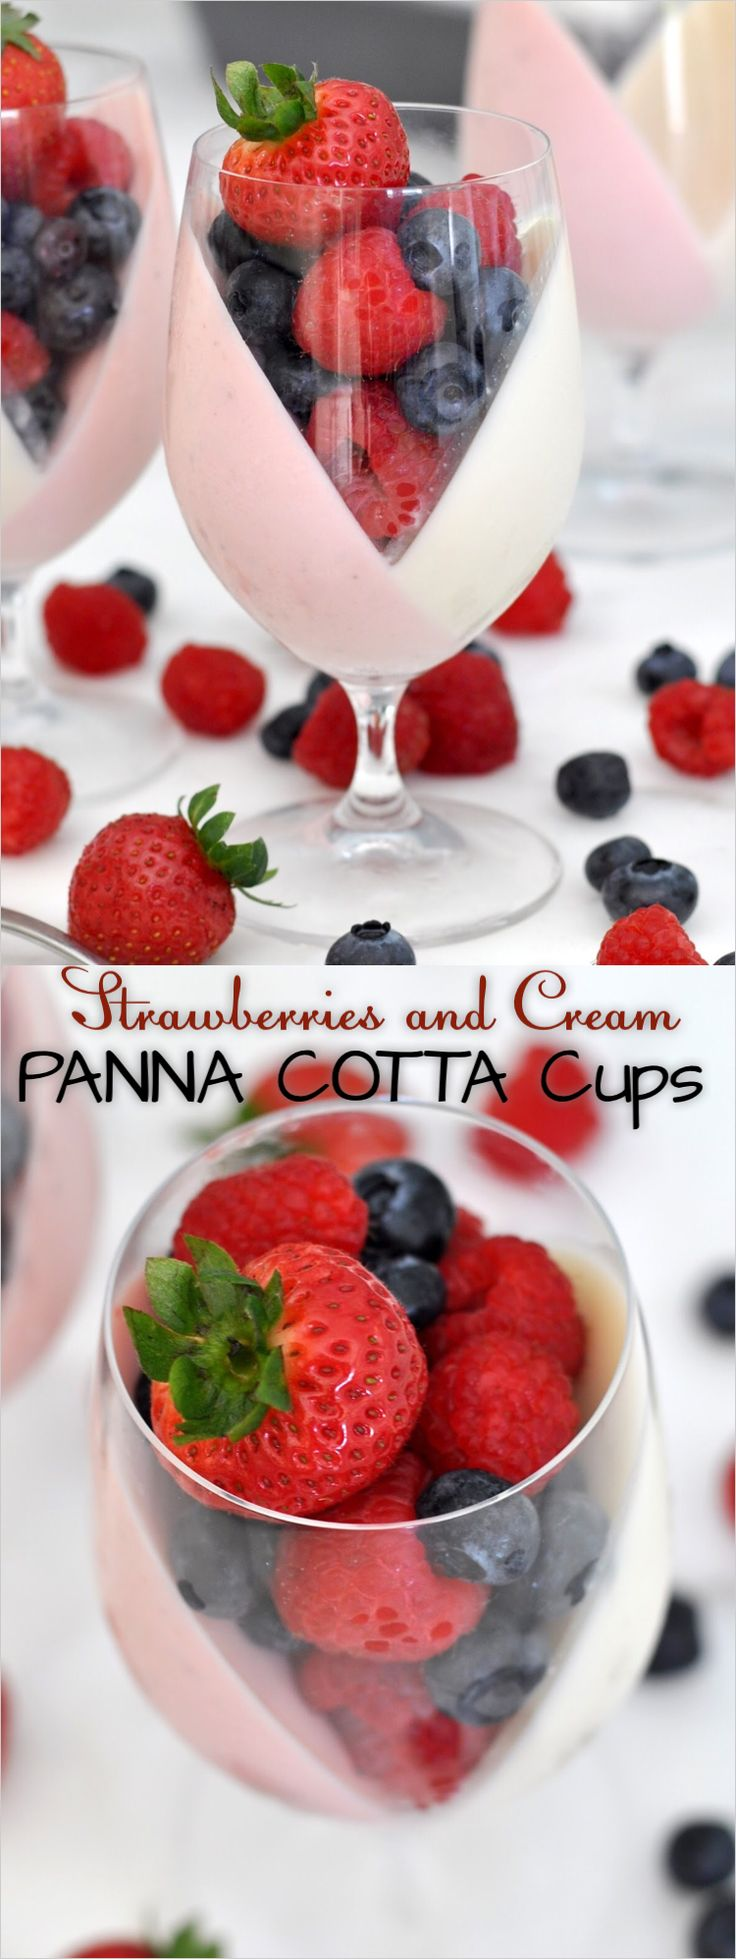 Let's give a new shape to the classic Italian panna cotta with these beautiful pink and white cups filled with lots of fresh fruit